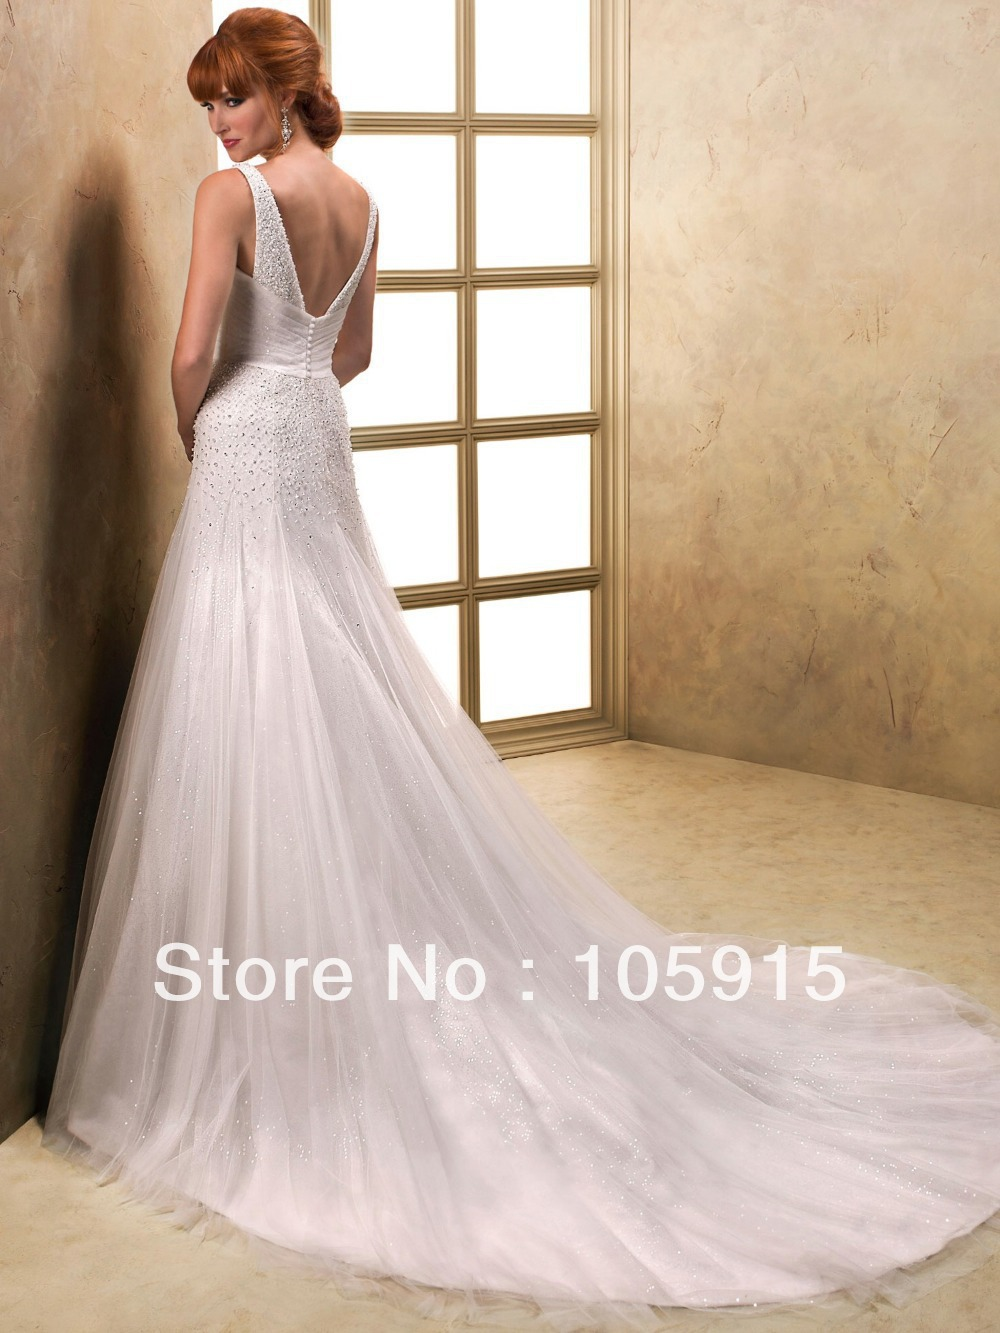 Low Back Wedding Dress With Veil : Tailor madenoble luxury crystal buttons v neck and back